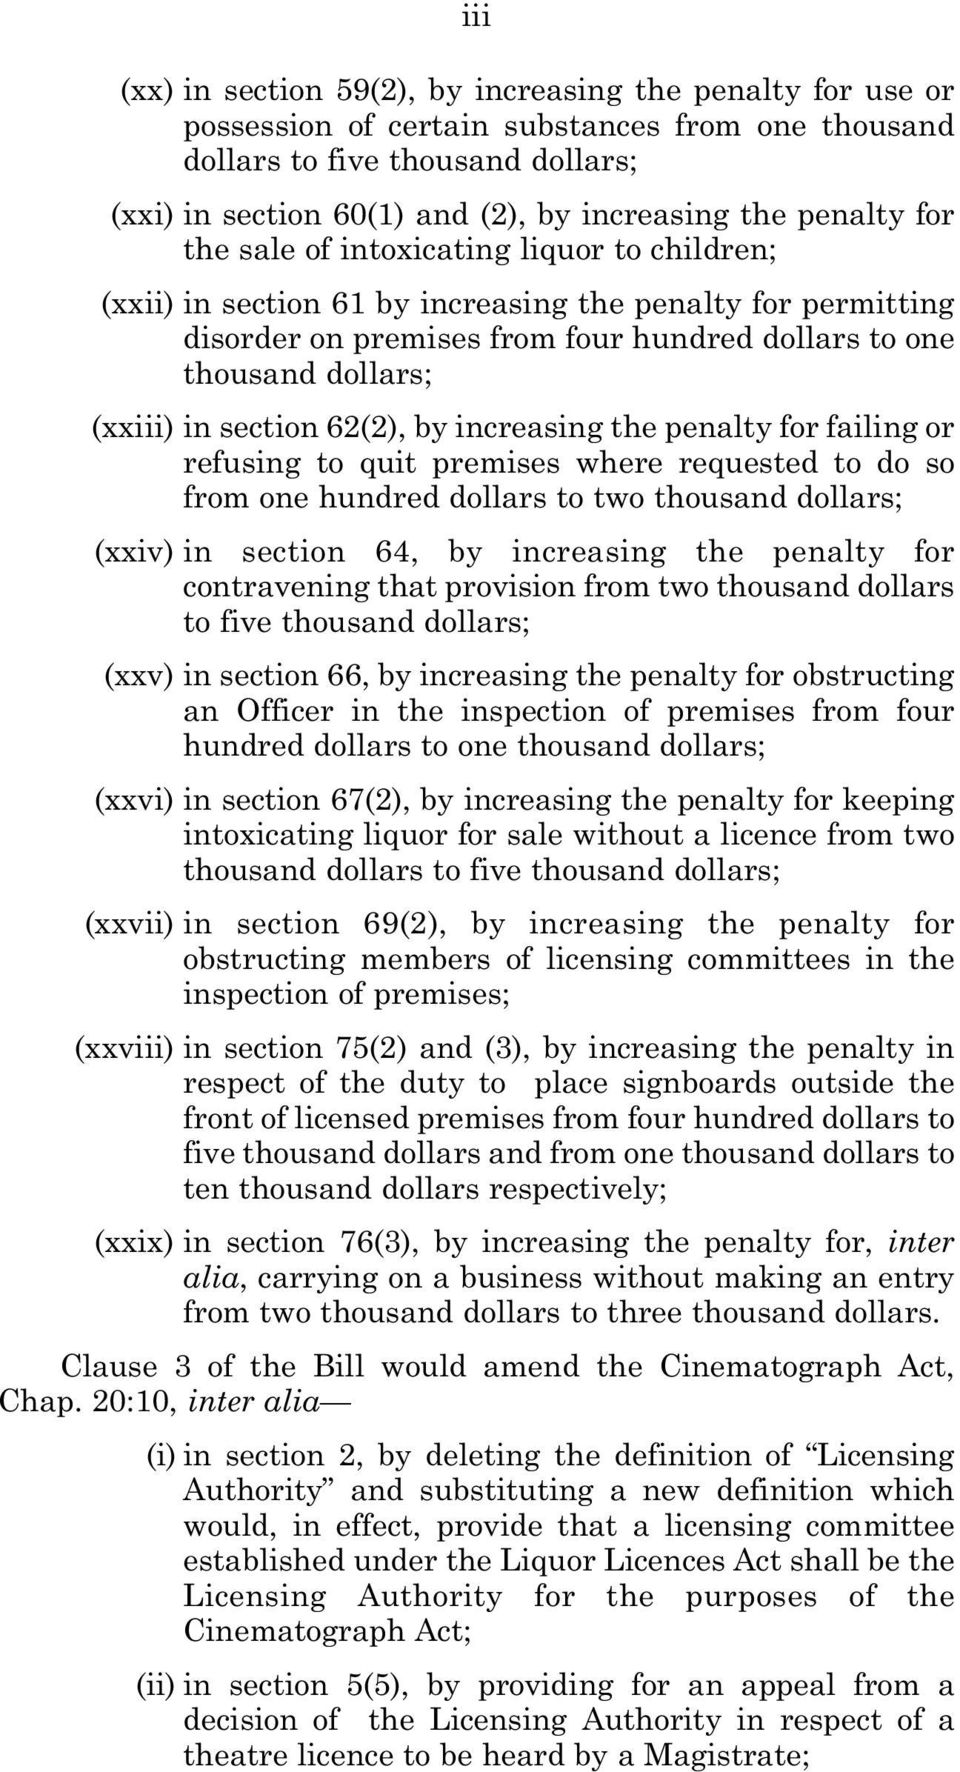 in section 62(2), by increasing the penalty for failing or refusing to quit premises where requested to do so from one hundred dollars to two thousand dollars; (xxiv) in section 64, by increasing the